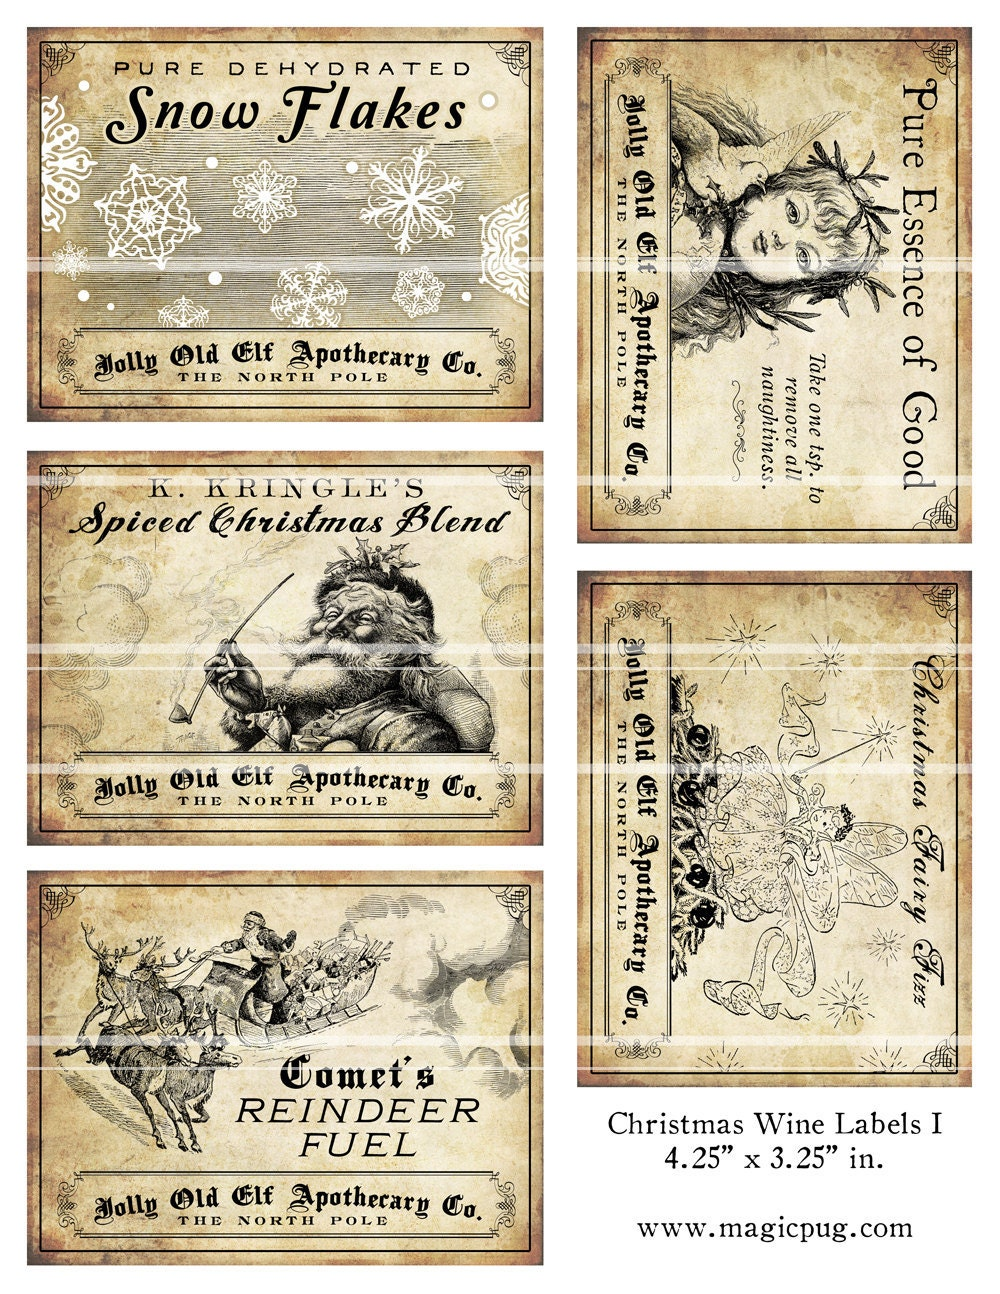 Antique Christmas Potion Wine Labels 4.25 x 3.25 by magicpug